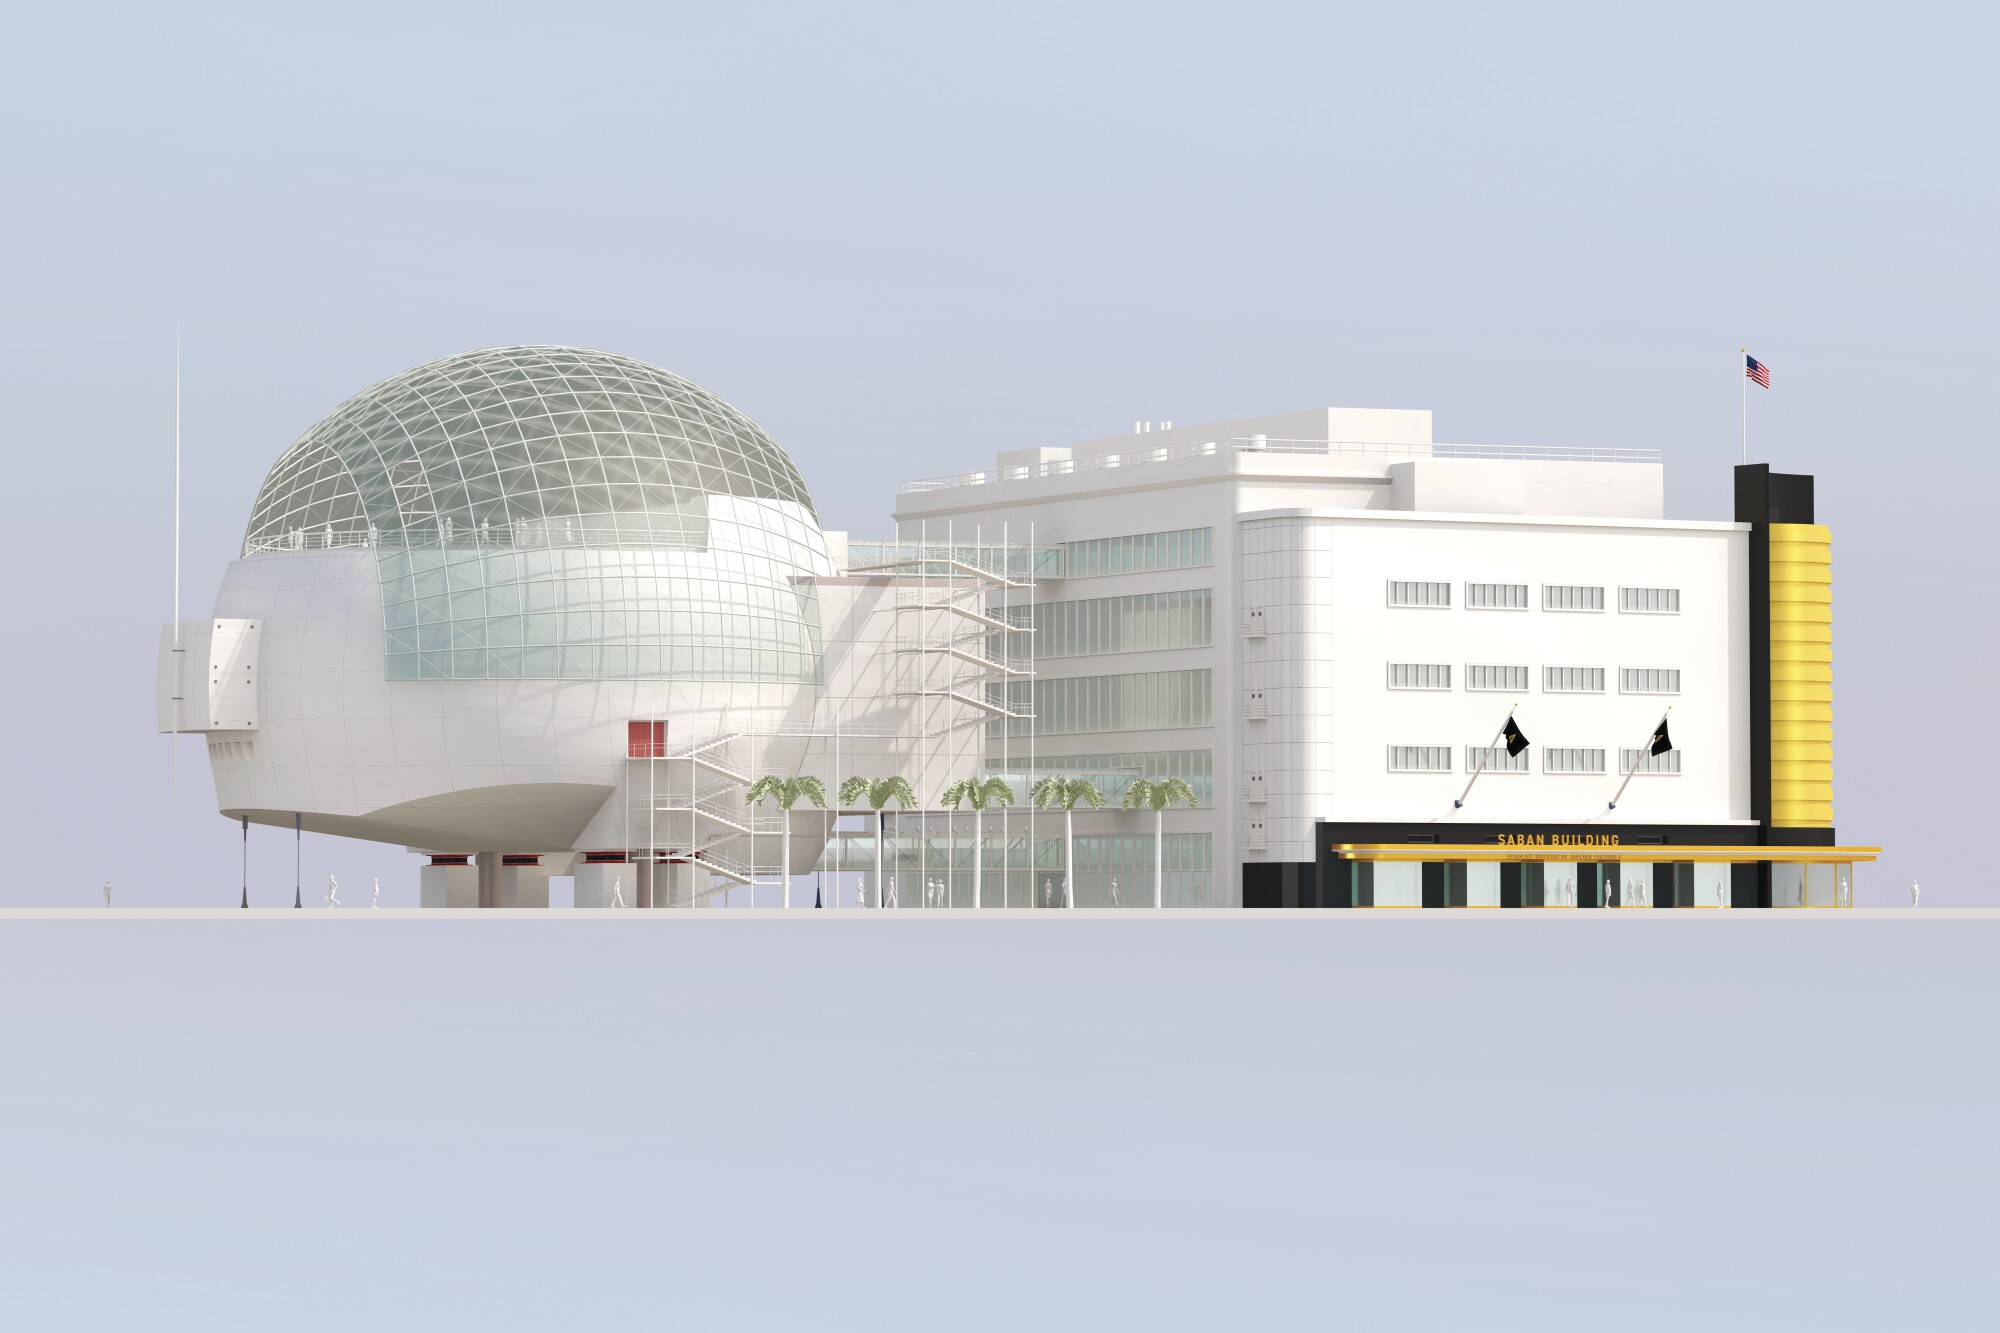 Illustration of the Academy Museum of Motion Pictures